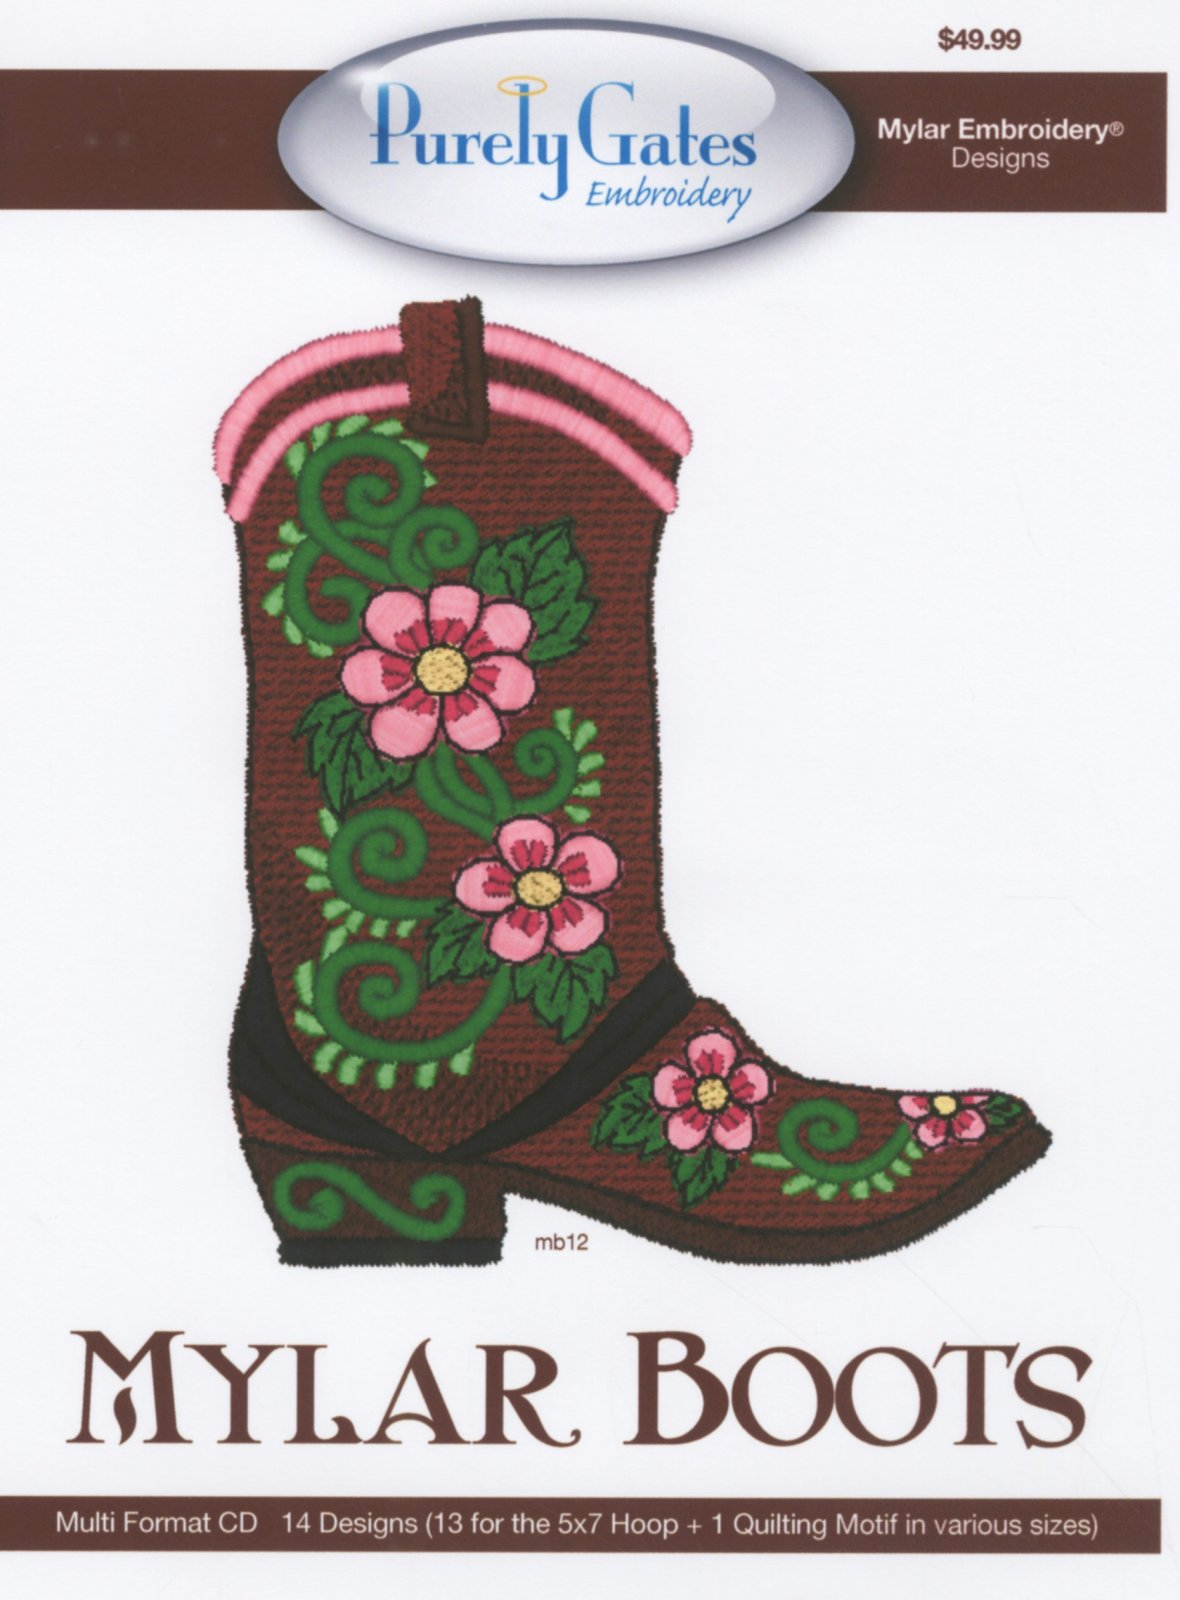 CD Embroidery Design Mylar Boots Machine Embroidery